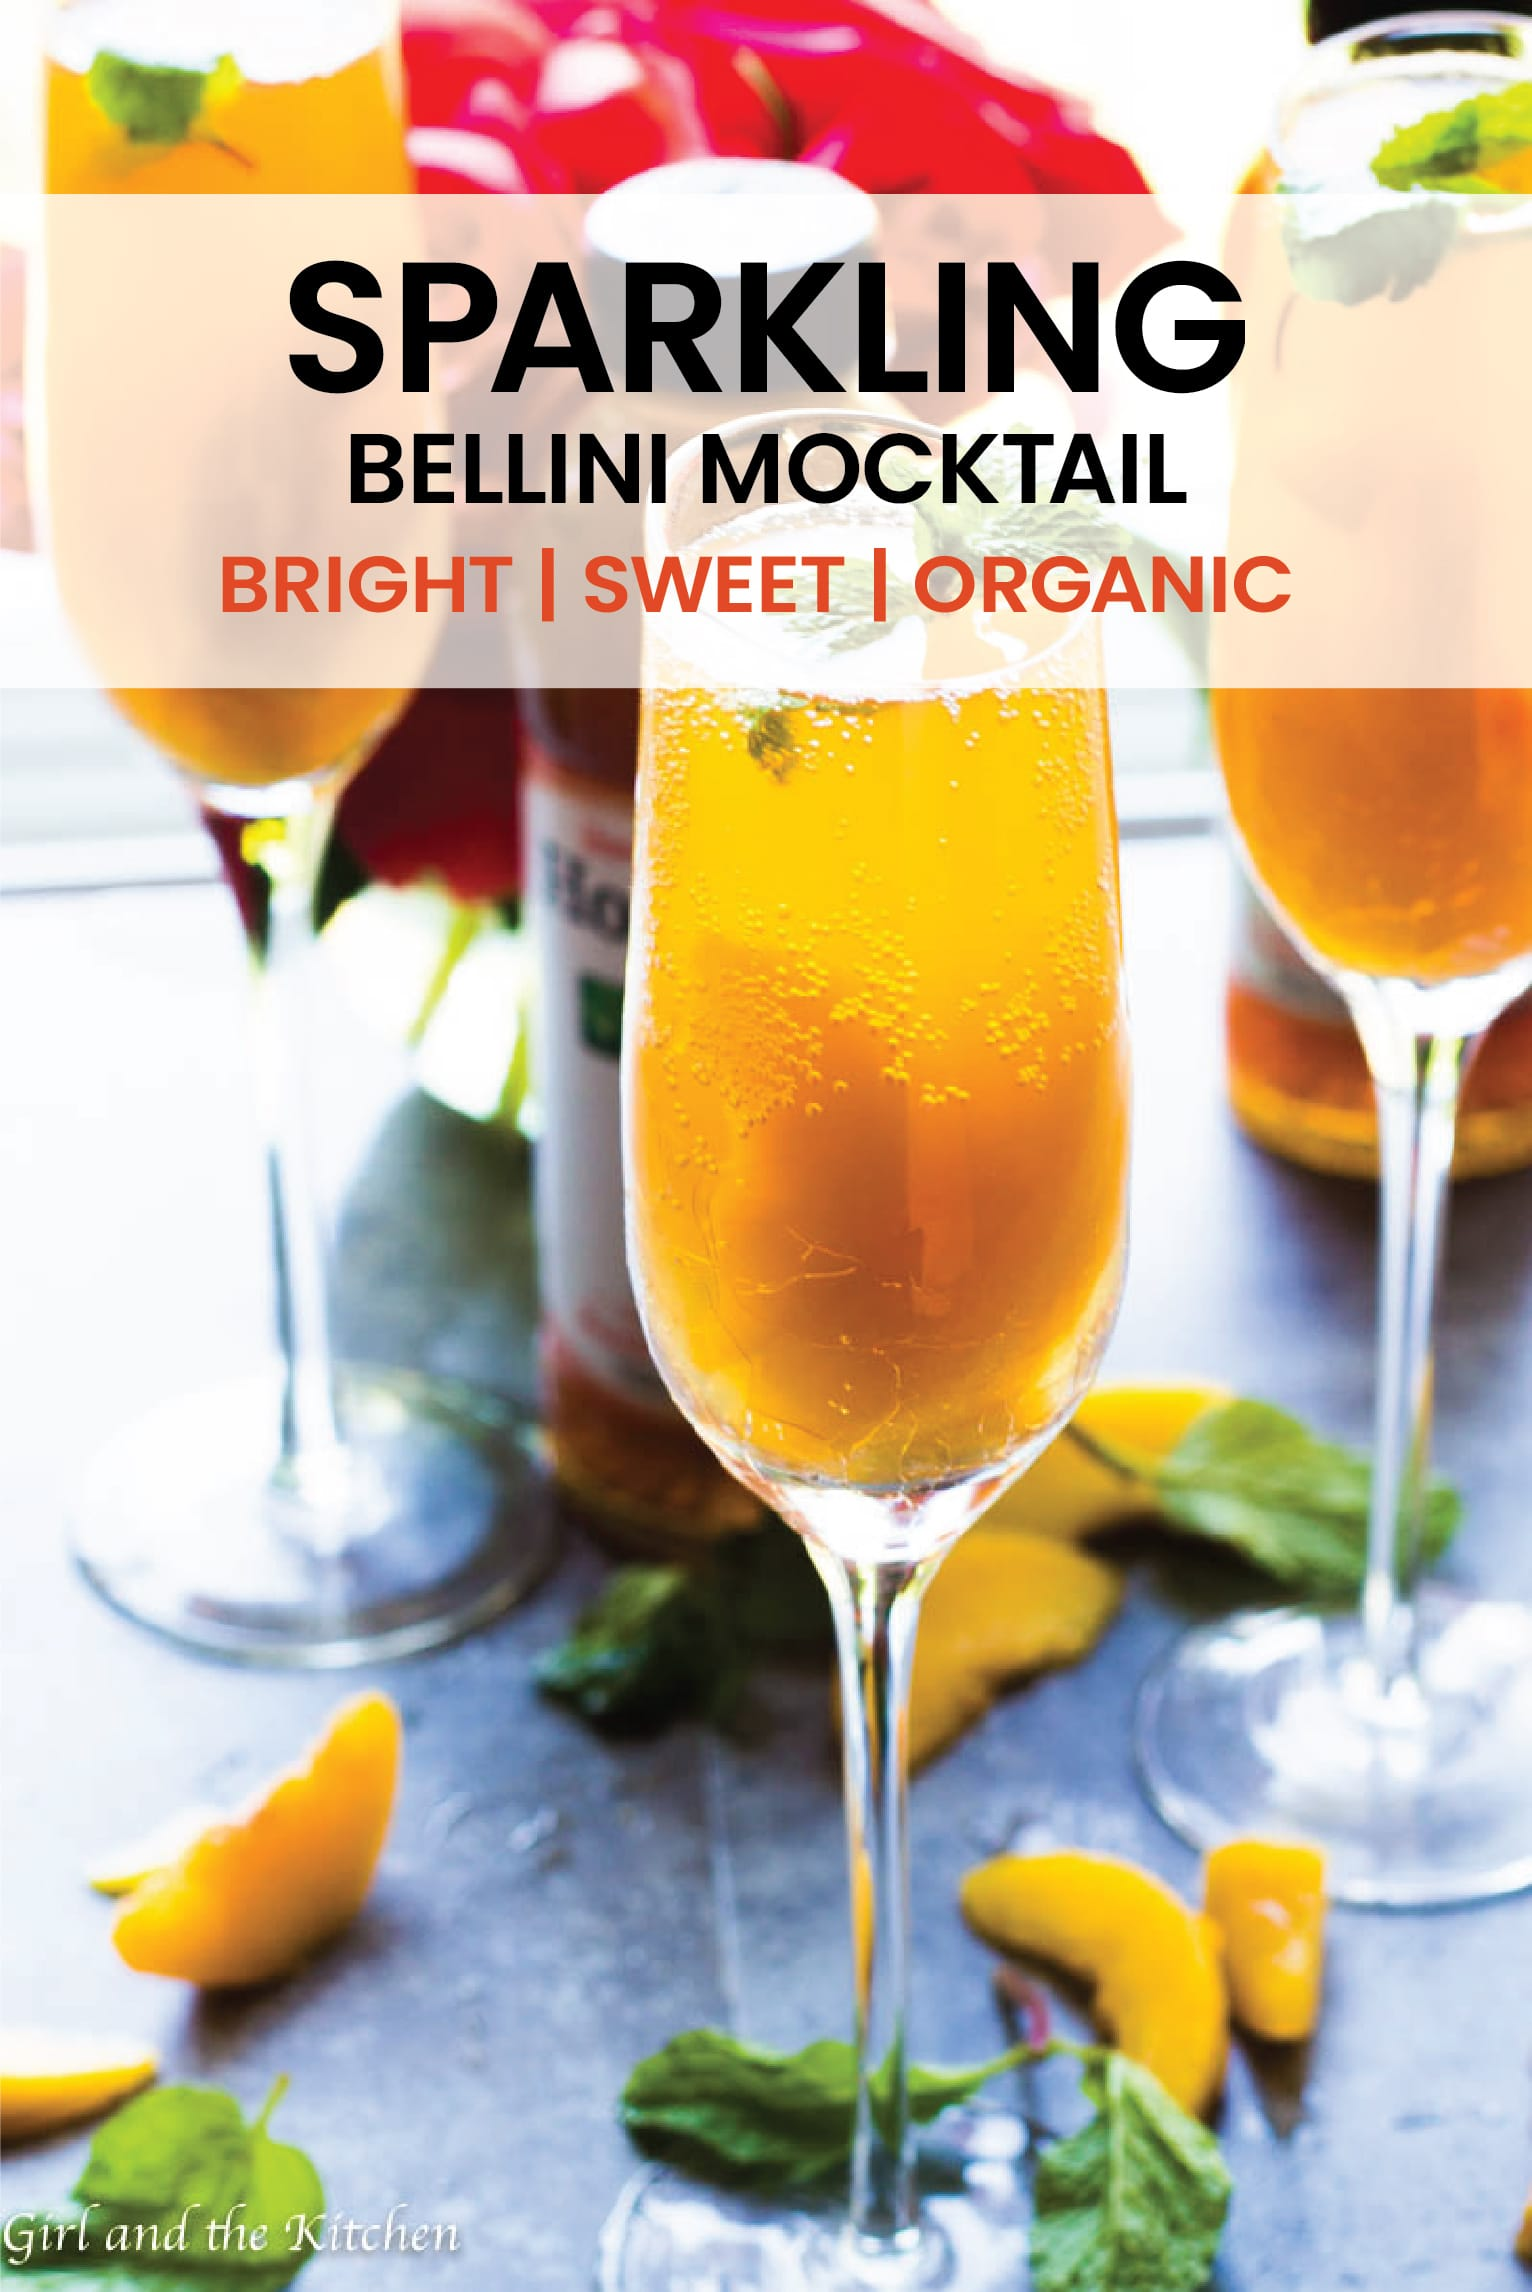 This deliciousSparkling Bellini Mocktailis not just for adults! Full ofbrightpeach flavors from thedeliciousnessofOrganicHonest® Tea and sweet peaches this mocktail will please everyone at your next party! #mocktail # Bright #organic